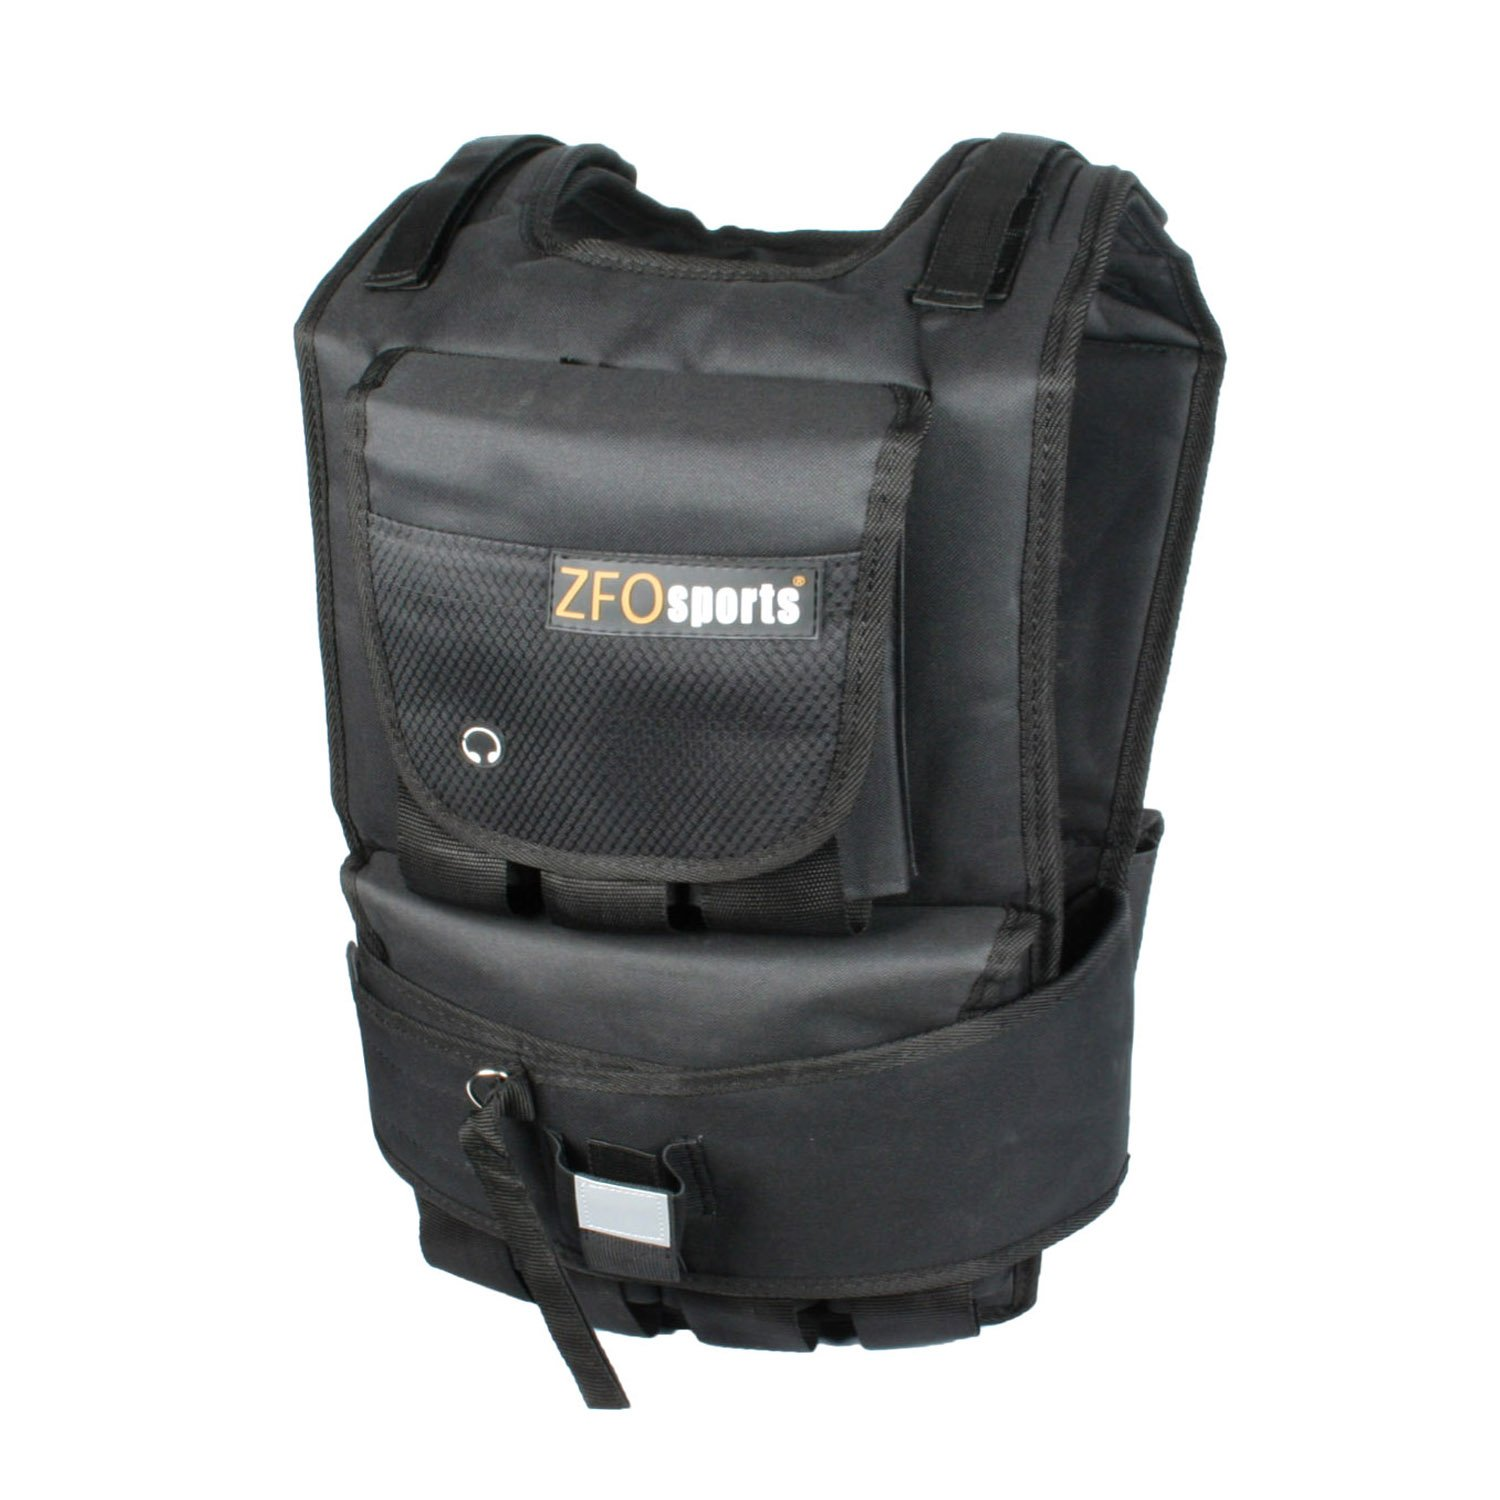 ZFOsports Weighted Vest 40lbs/60lbs/80lbs (60lbs) by ZFOsports (Image #1)